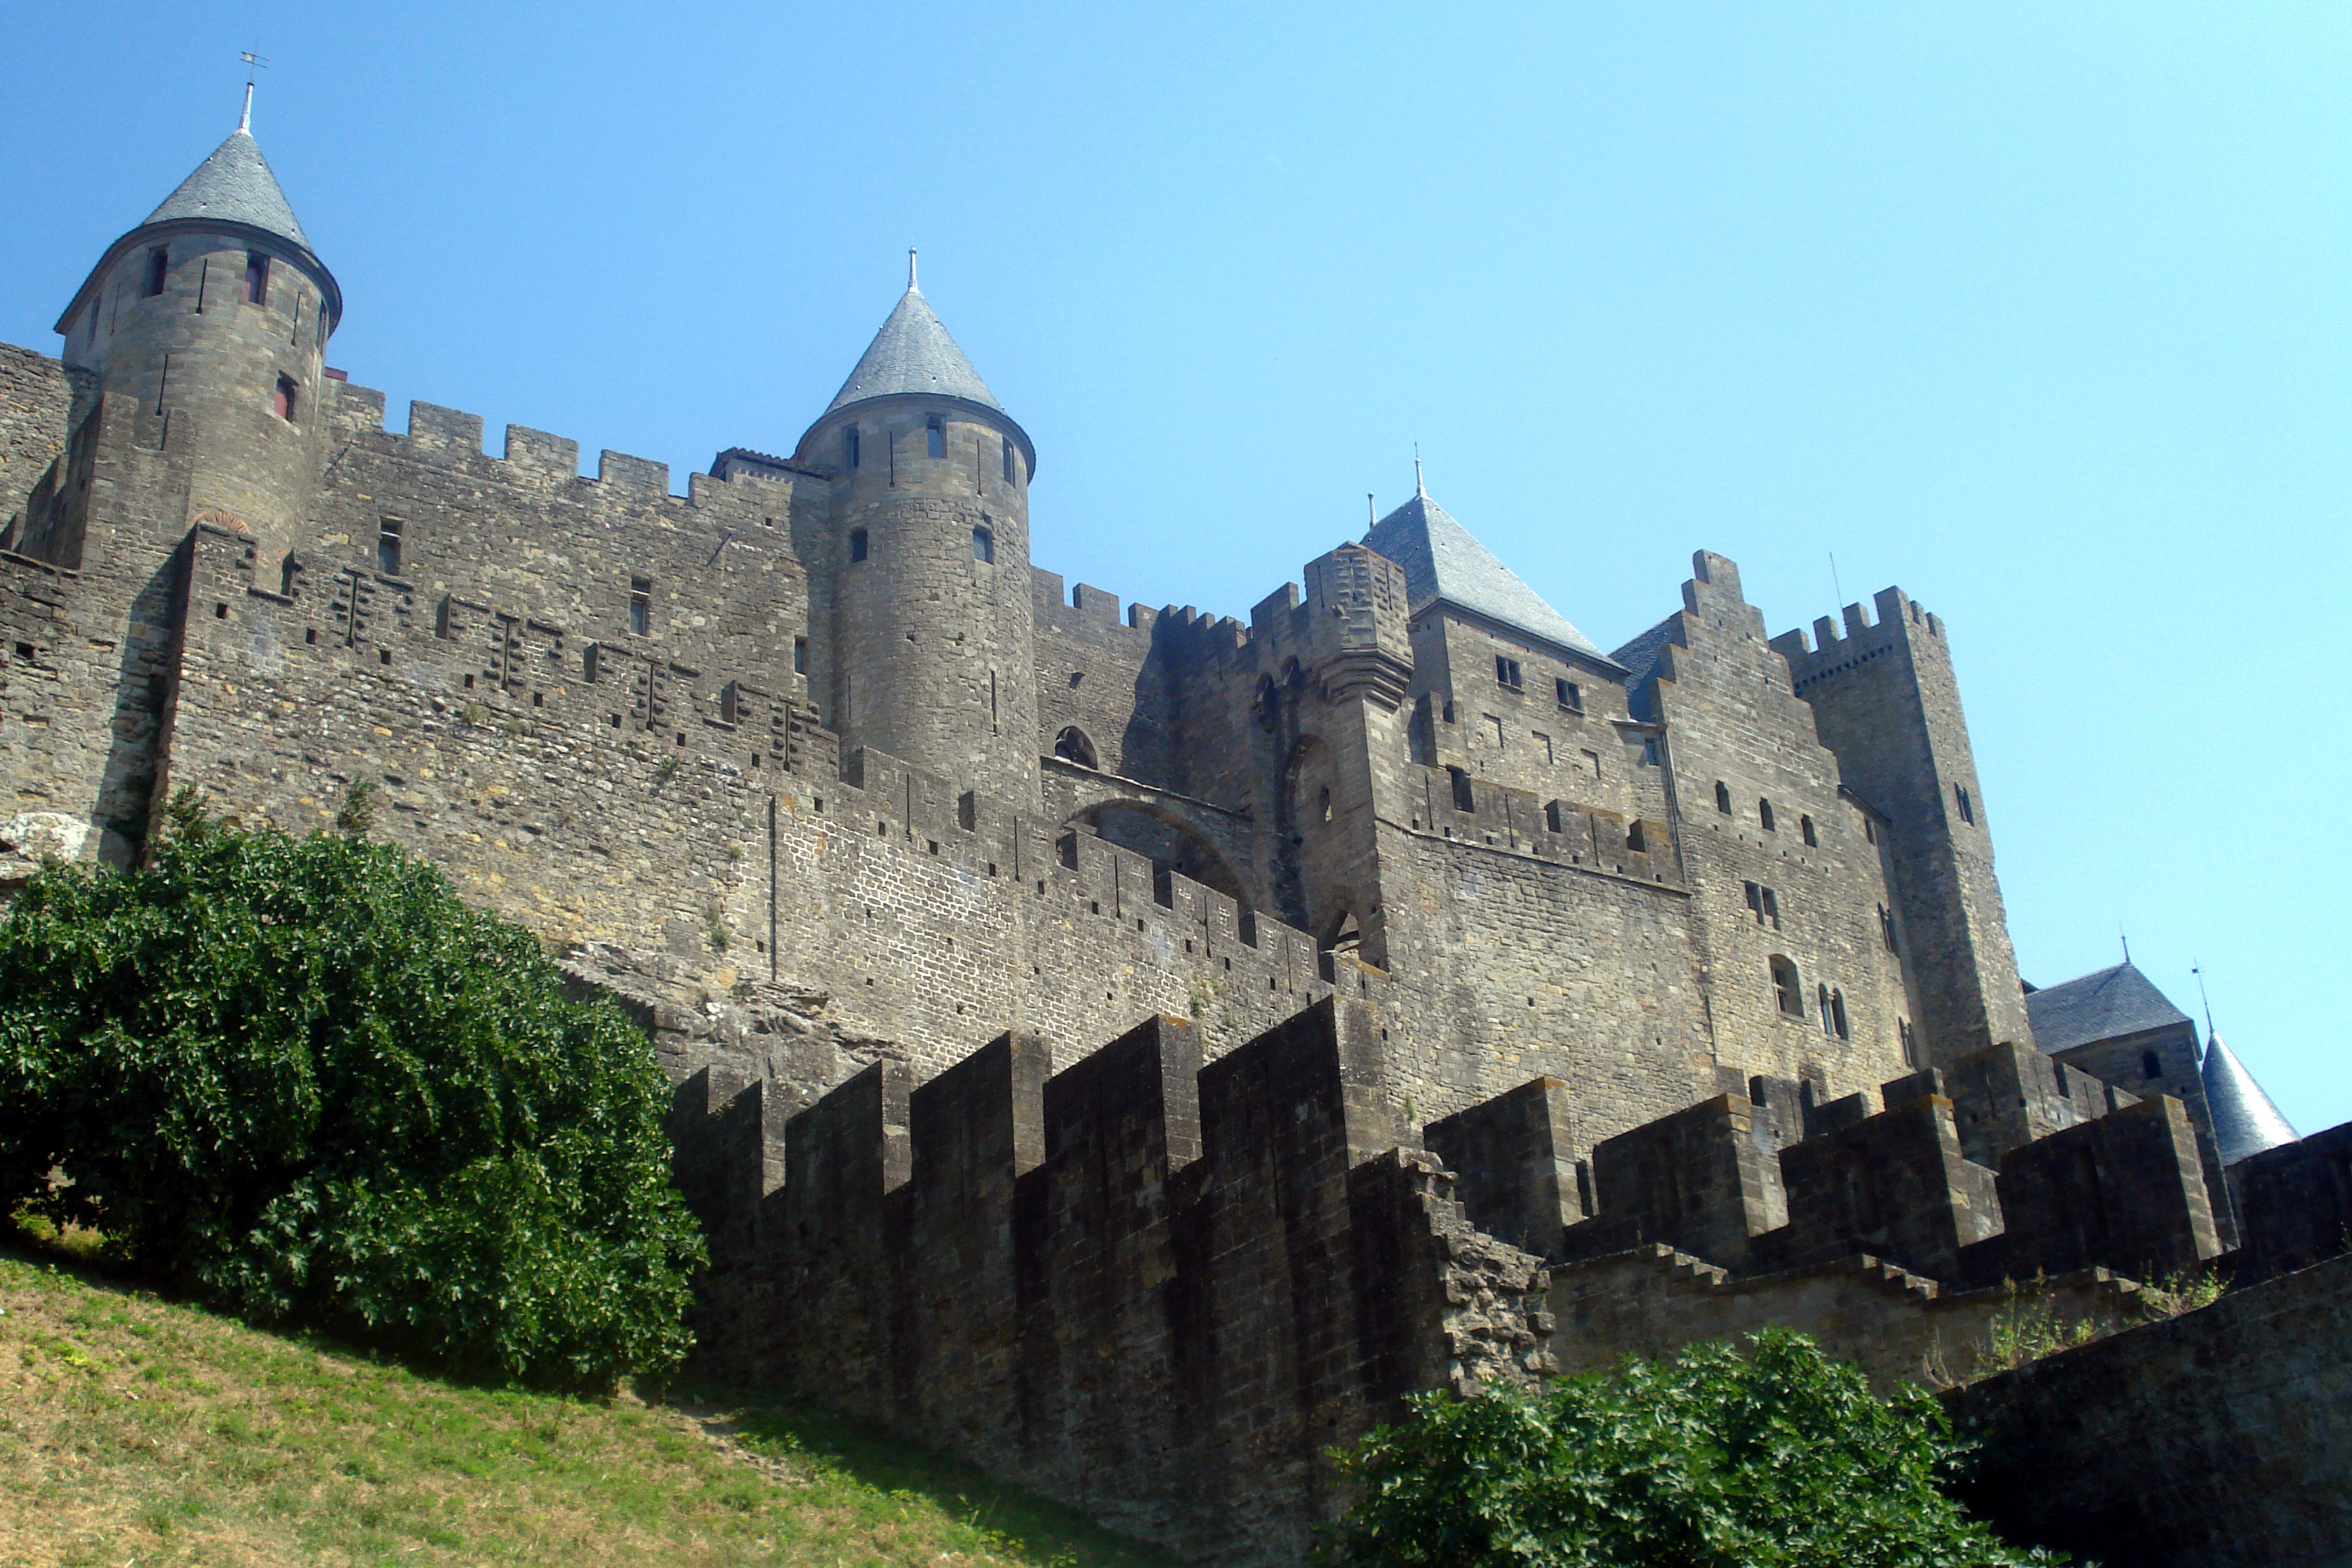 Cité de Carcassonne today.